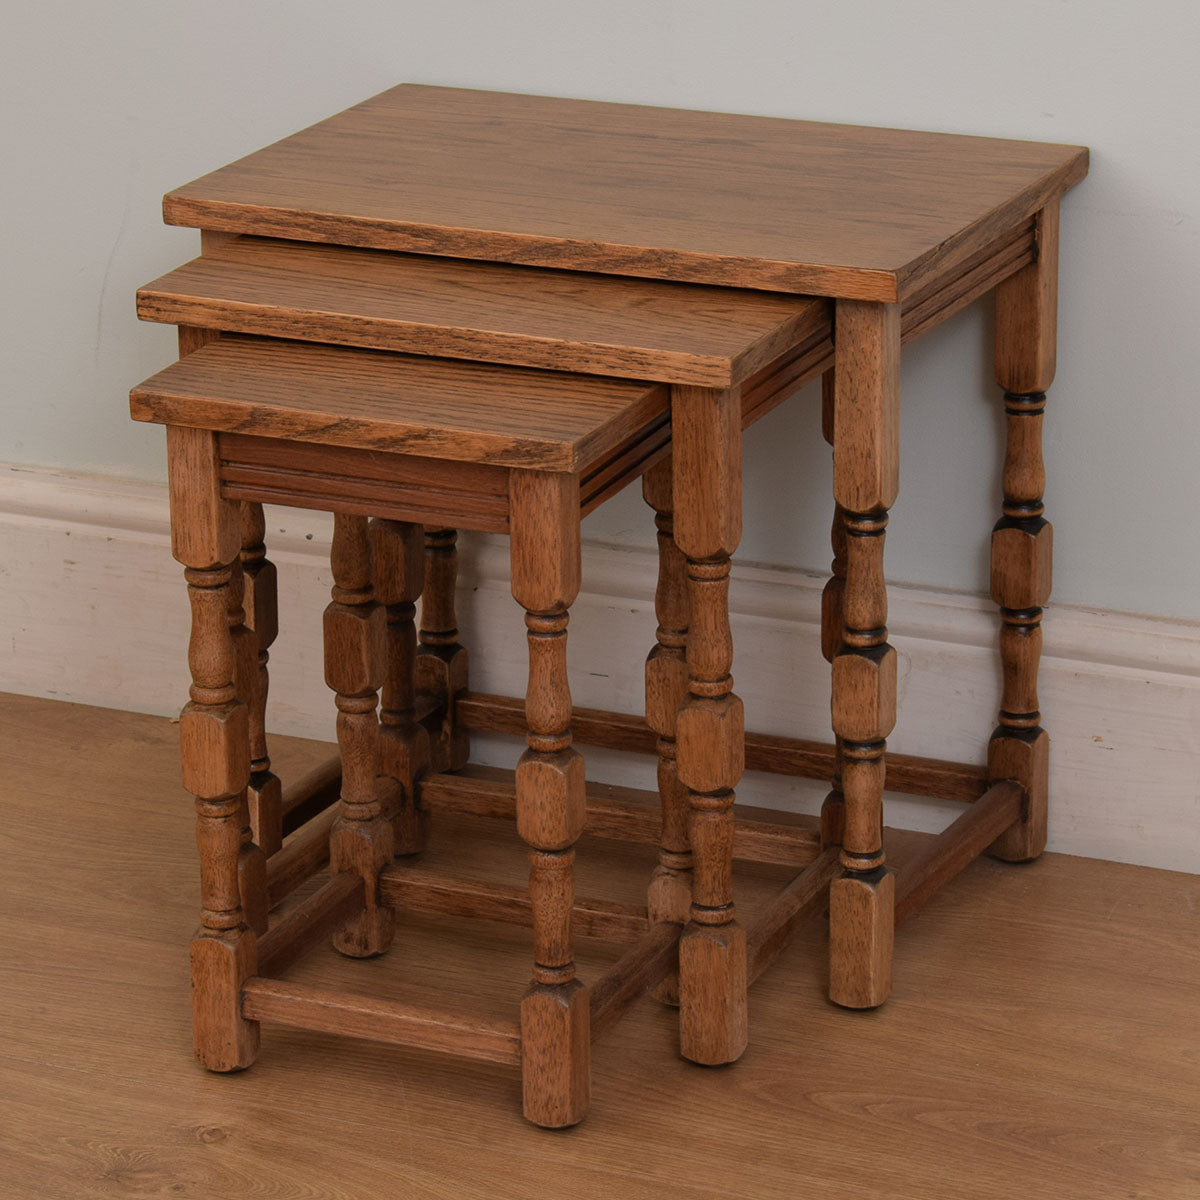 Traditional nest of three tables